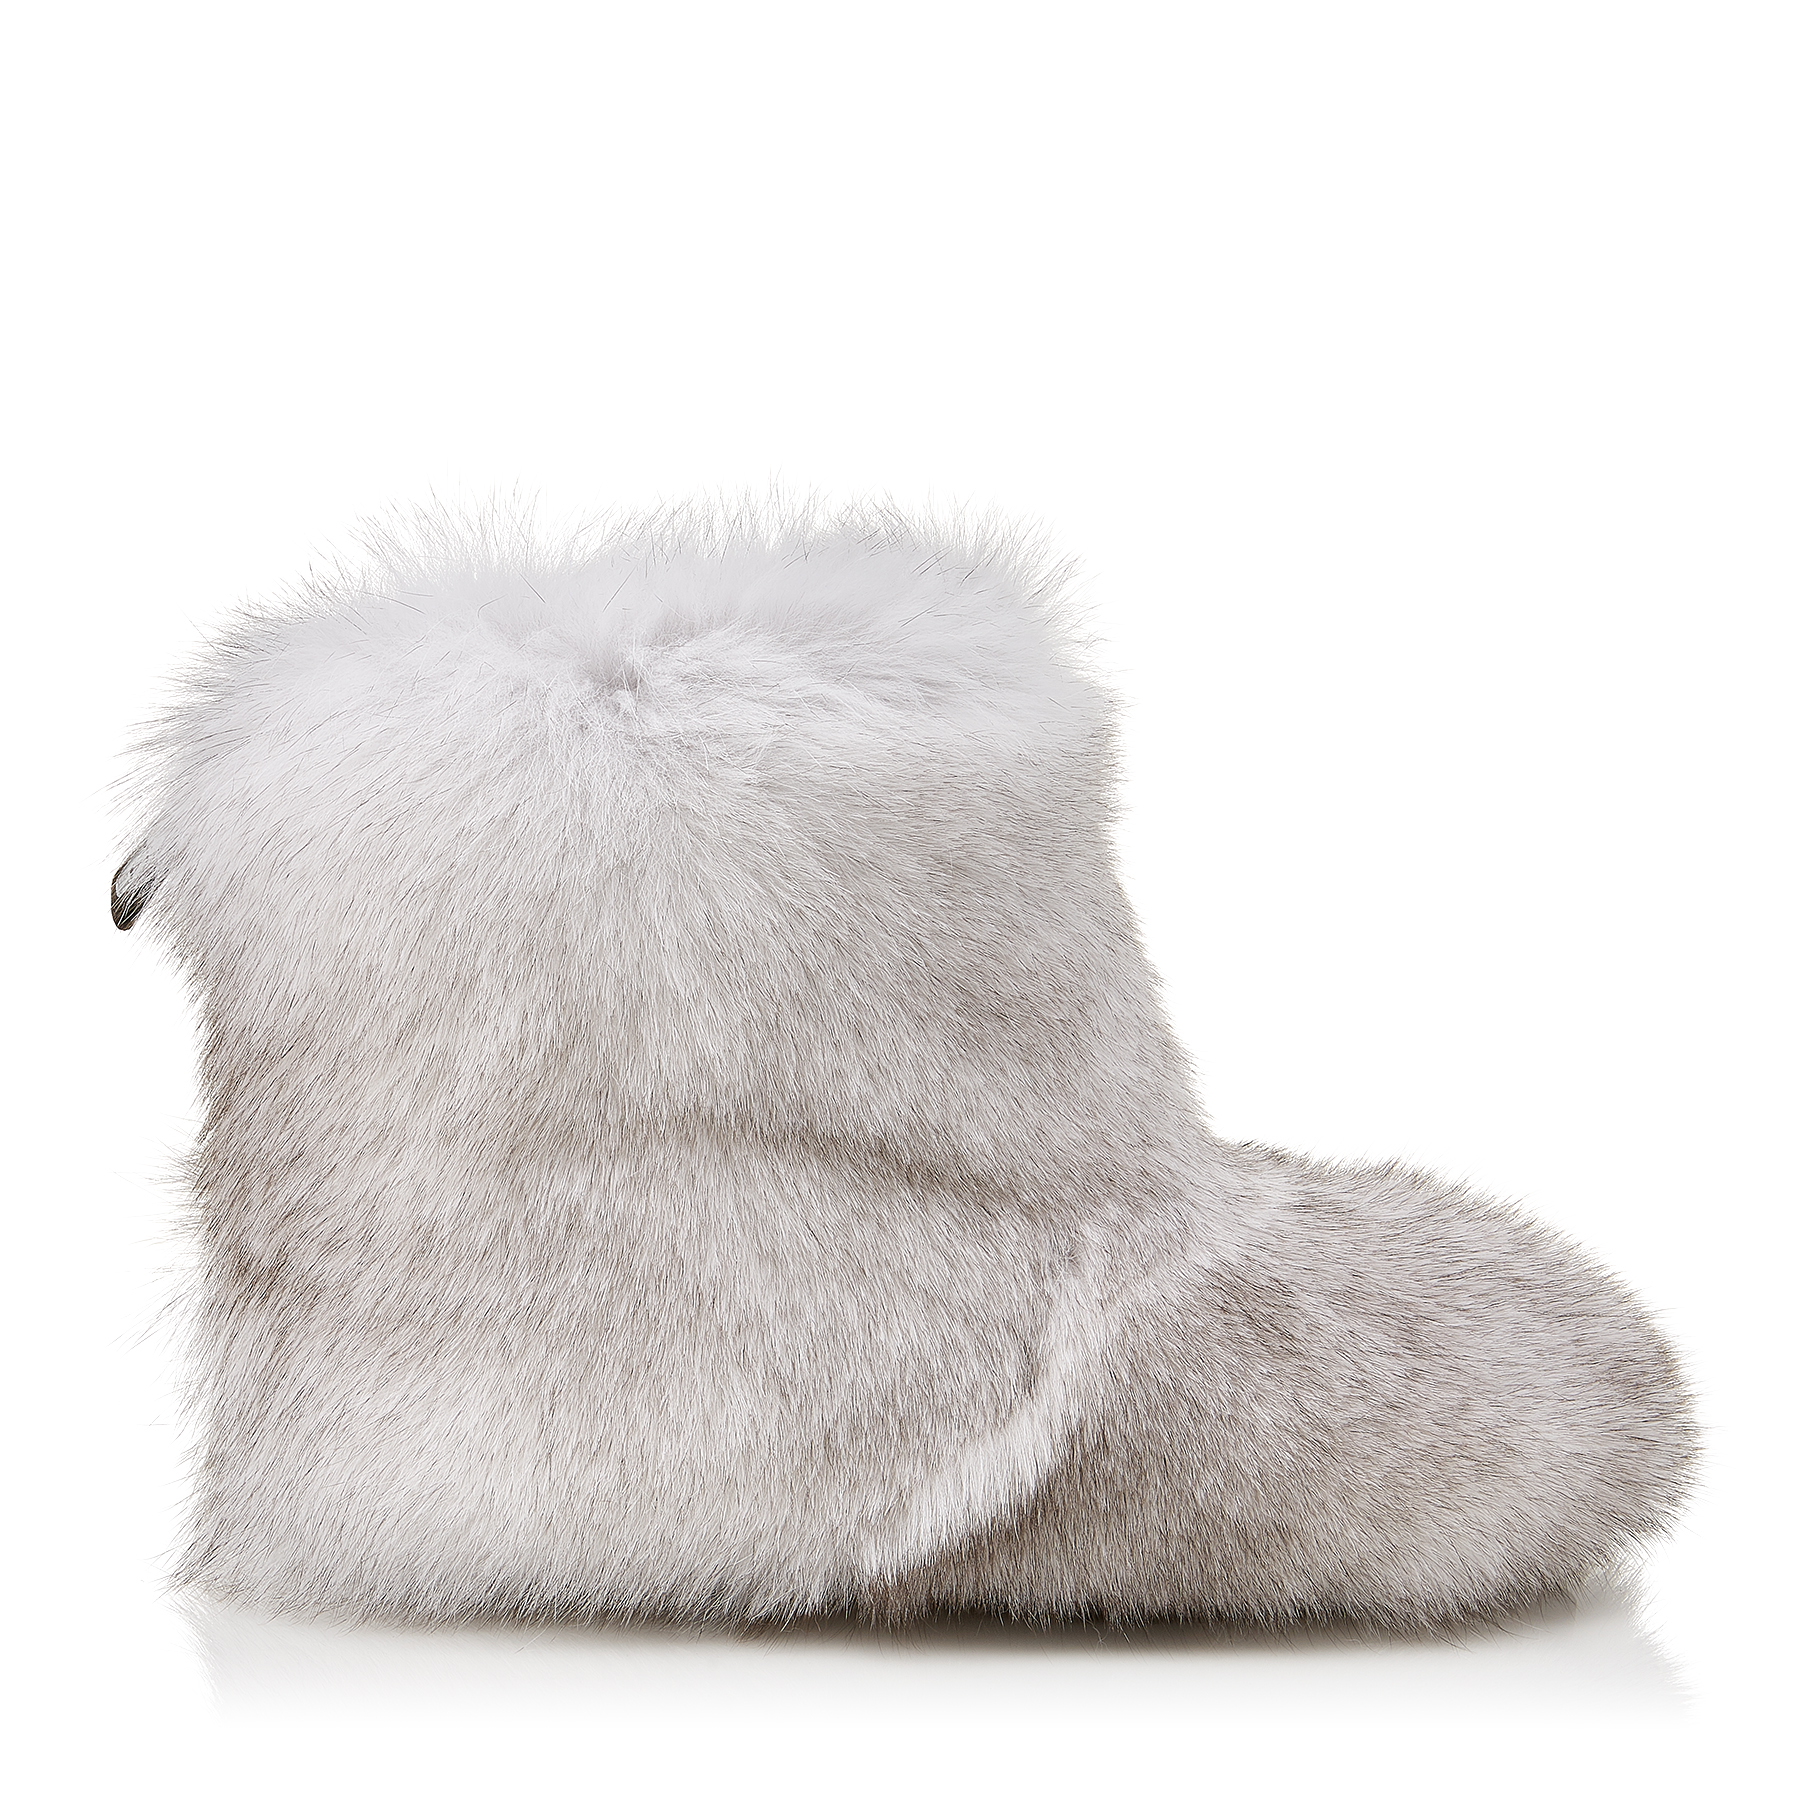 DALTON FLAT White Fox Fur Boots with Rabbit Fur Lining by Jimmy Choo